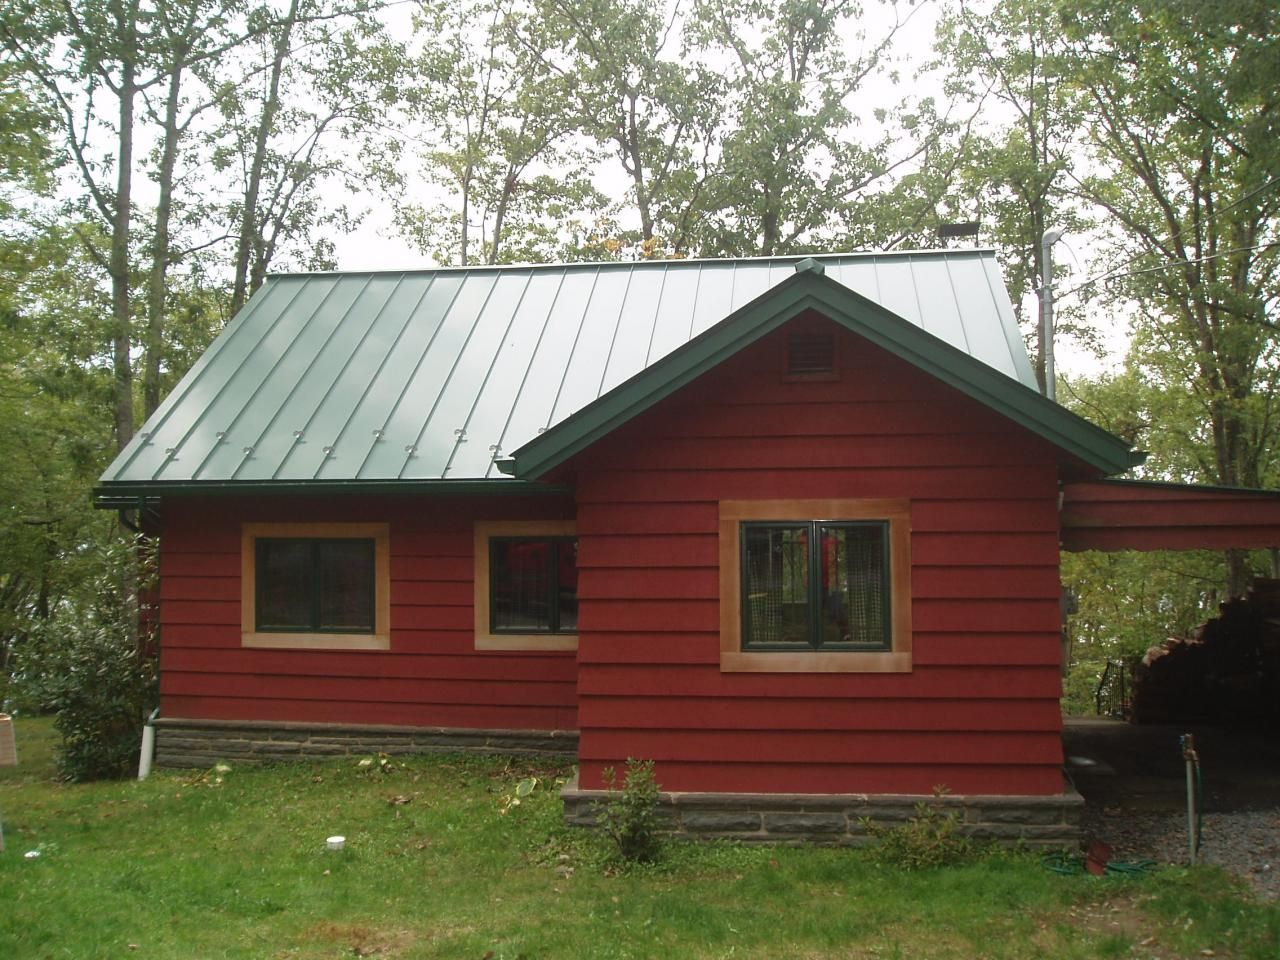 Green metal roof house google search house exterior for Images of houses with metal roofs